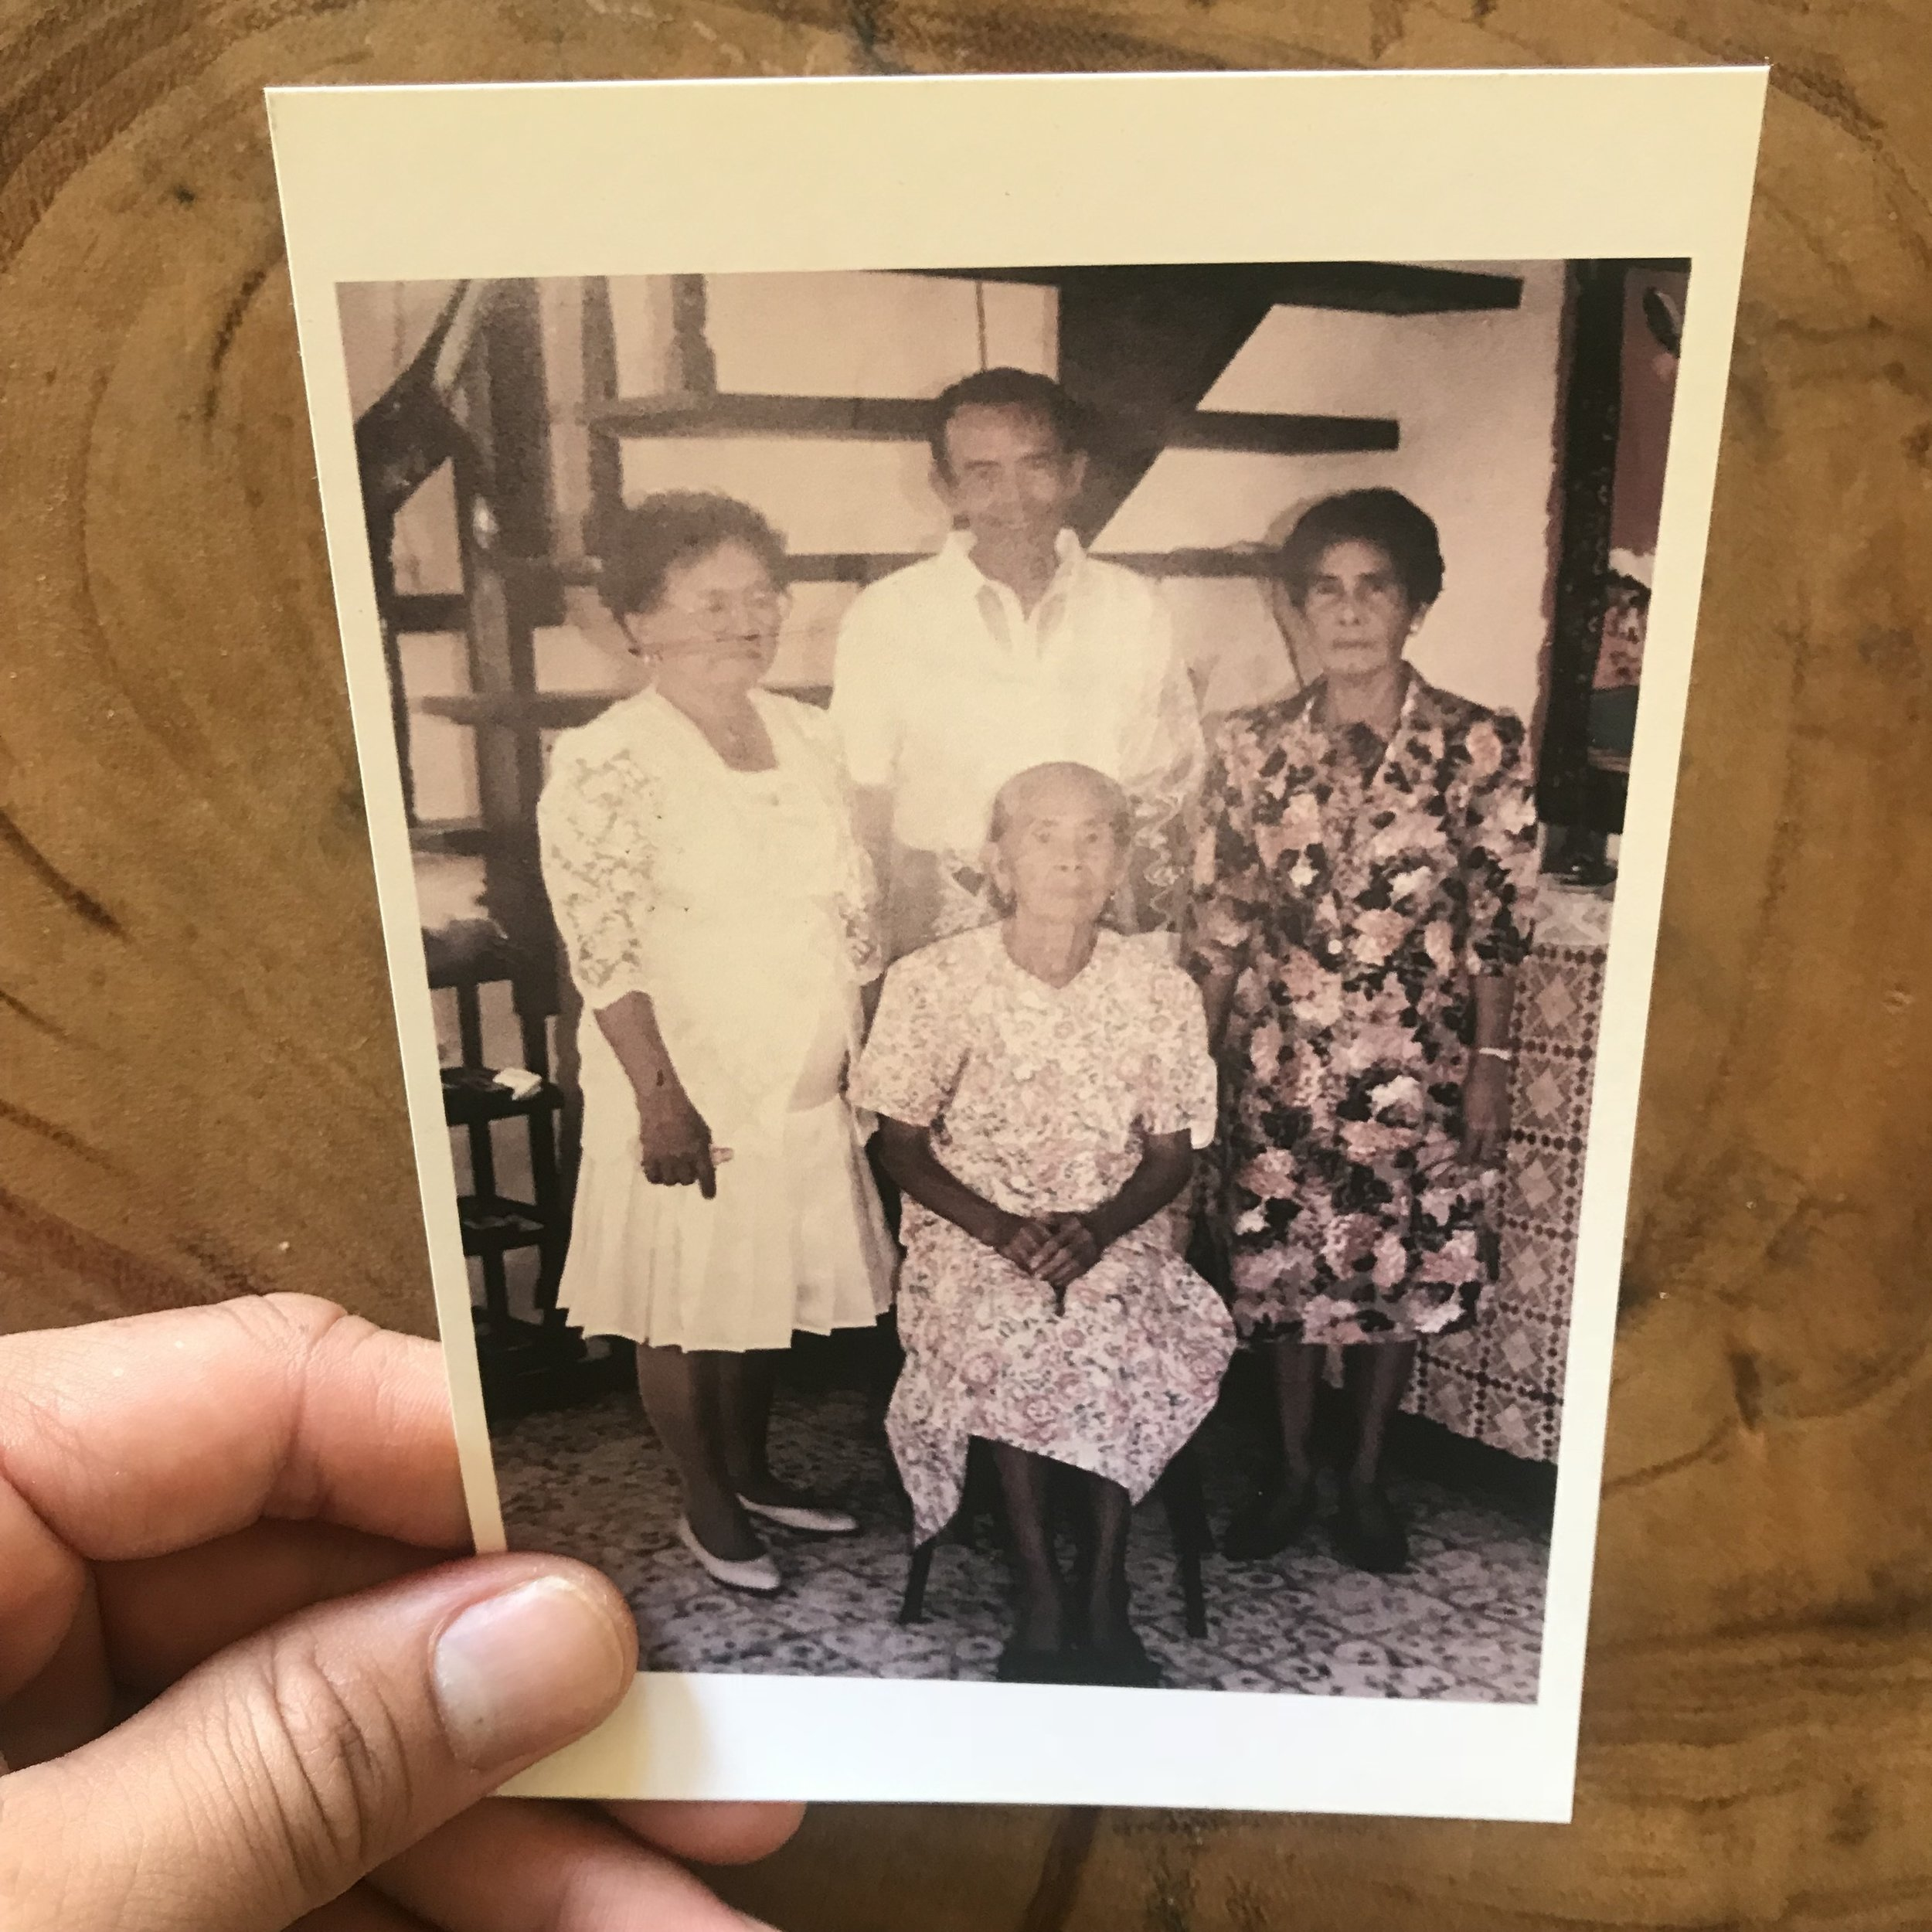 This is a photo of my Lola (grandma, right) and her mom, my great grandma, in the center.  This is the first image I've ever seen of my great grandma. It's interesting digging up this hxstory... growing up first generation American, it's easy to forget about your lineage when all you see is your immigrant family in the states.  .  My great grandmother is no longer with us today, but my grandma is... she's 92. I hope I can visit her soon before it's too late. I'm sure she's a wealth of knowledge. My only real memory of her is when I visited as a child and saw her drunk while watching wrestling, yelling at the TV. And another memory I suppose dancing cha cha in the night hours while drinking tuba (coconut wine). Maybe that's where I get it? The dancing, not the alcohol part... well, maybe both.